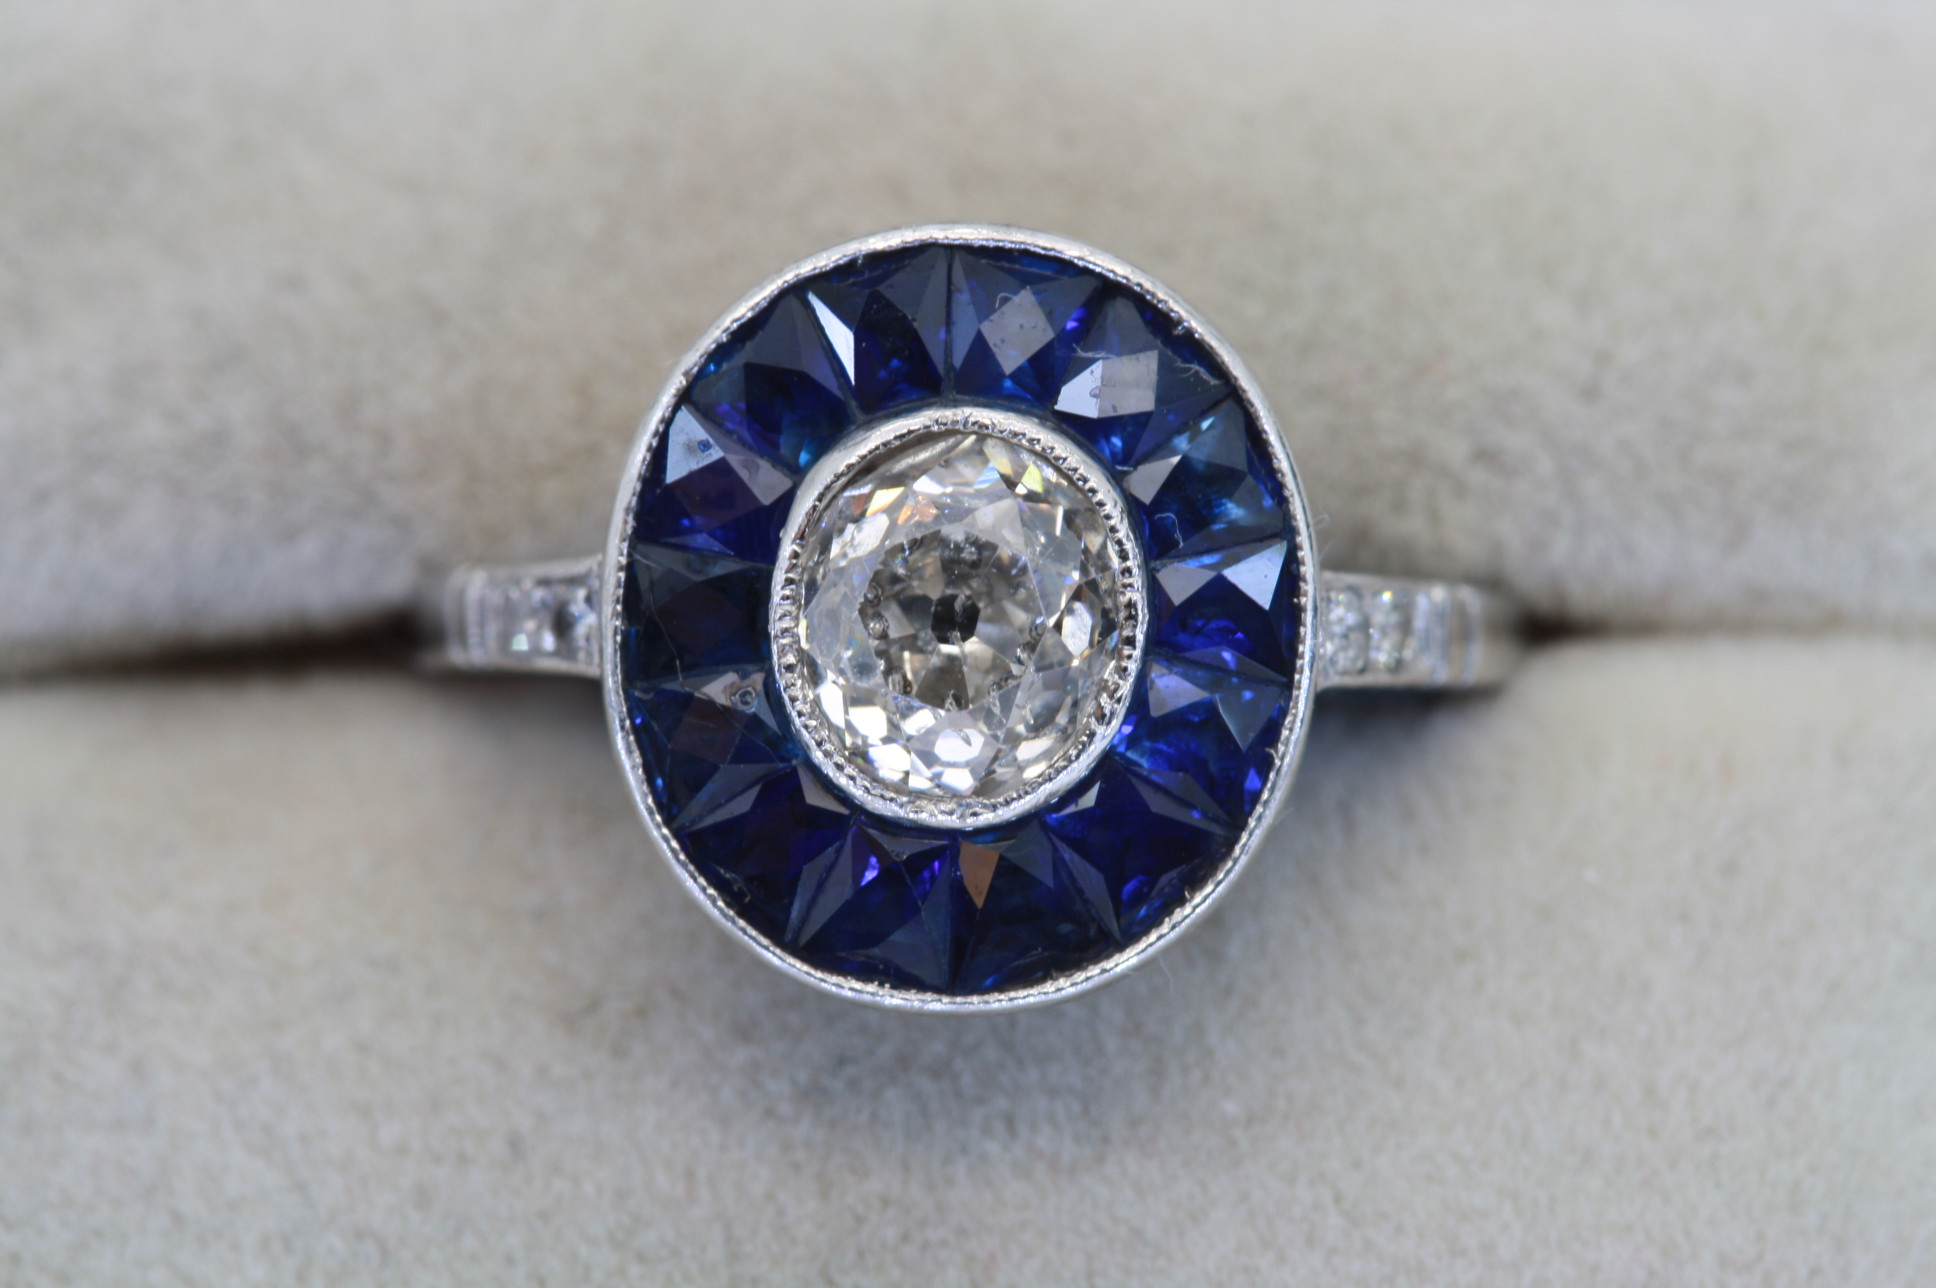 Diamond And Calibré Sapphire Ring For Cushion Cut Sapphire Rings (View 16 of 25)